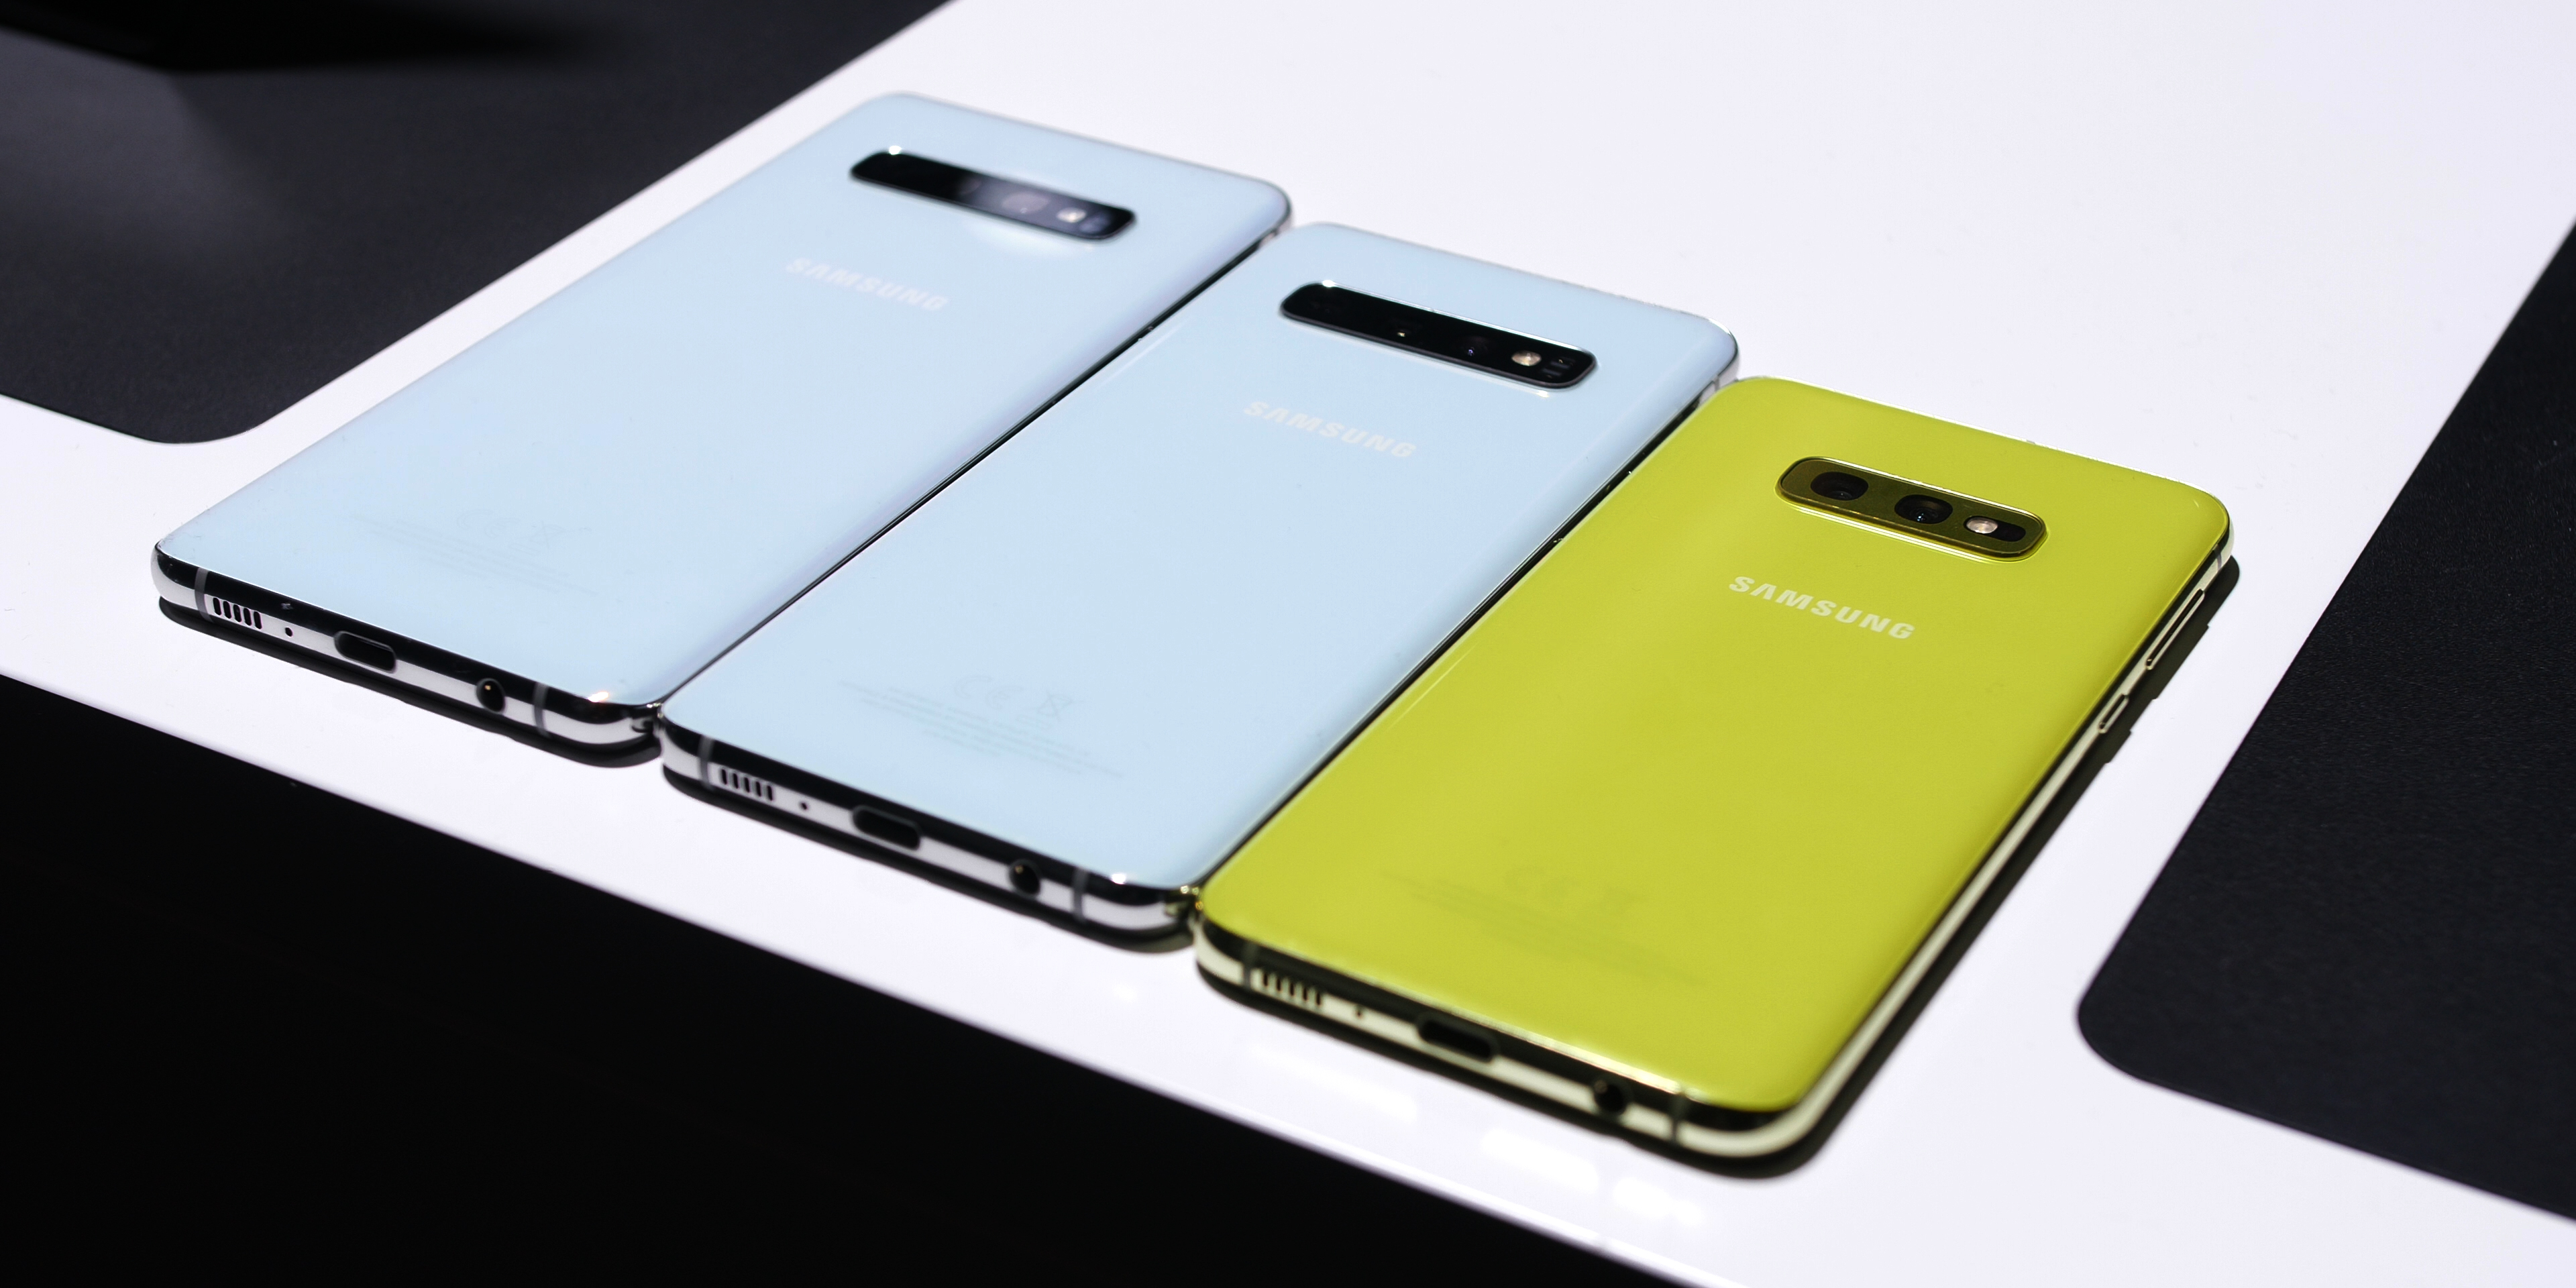 Samsung Galaxy S10e, S10, and S10+